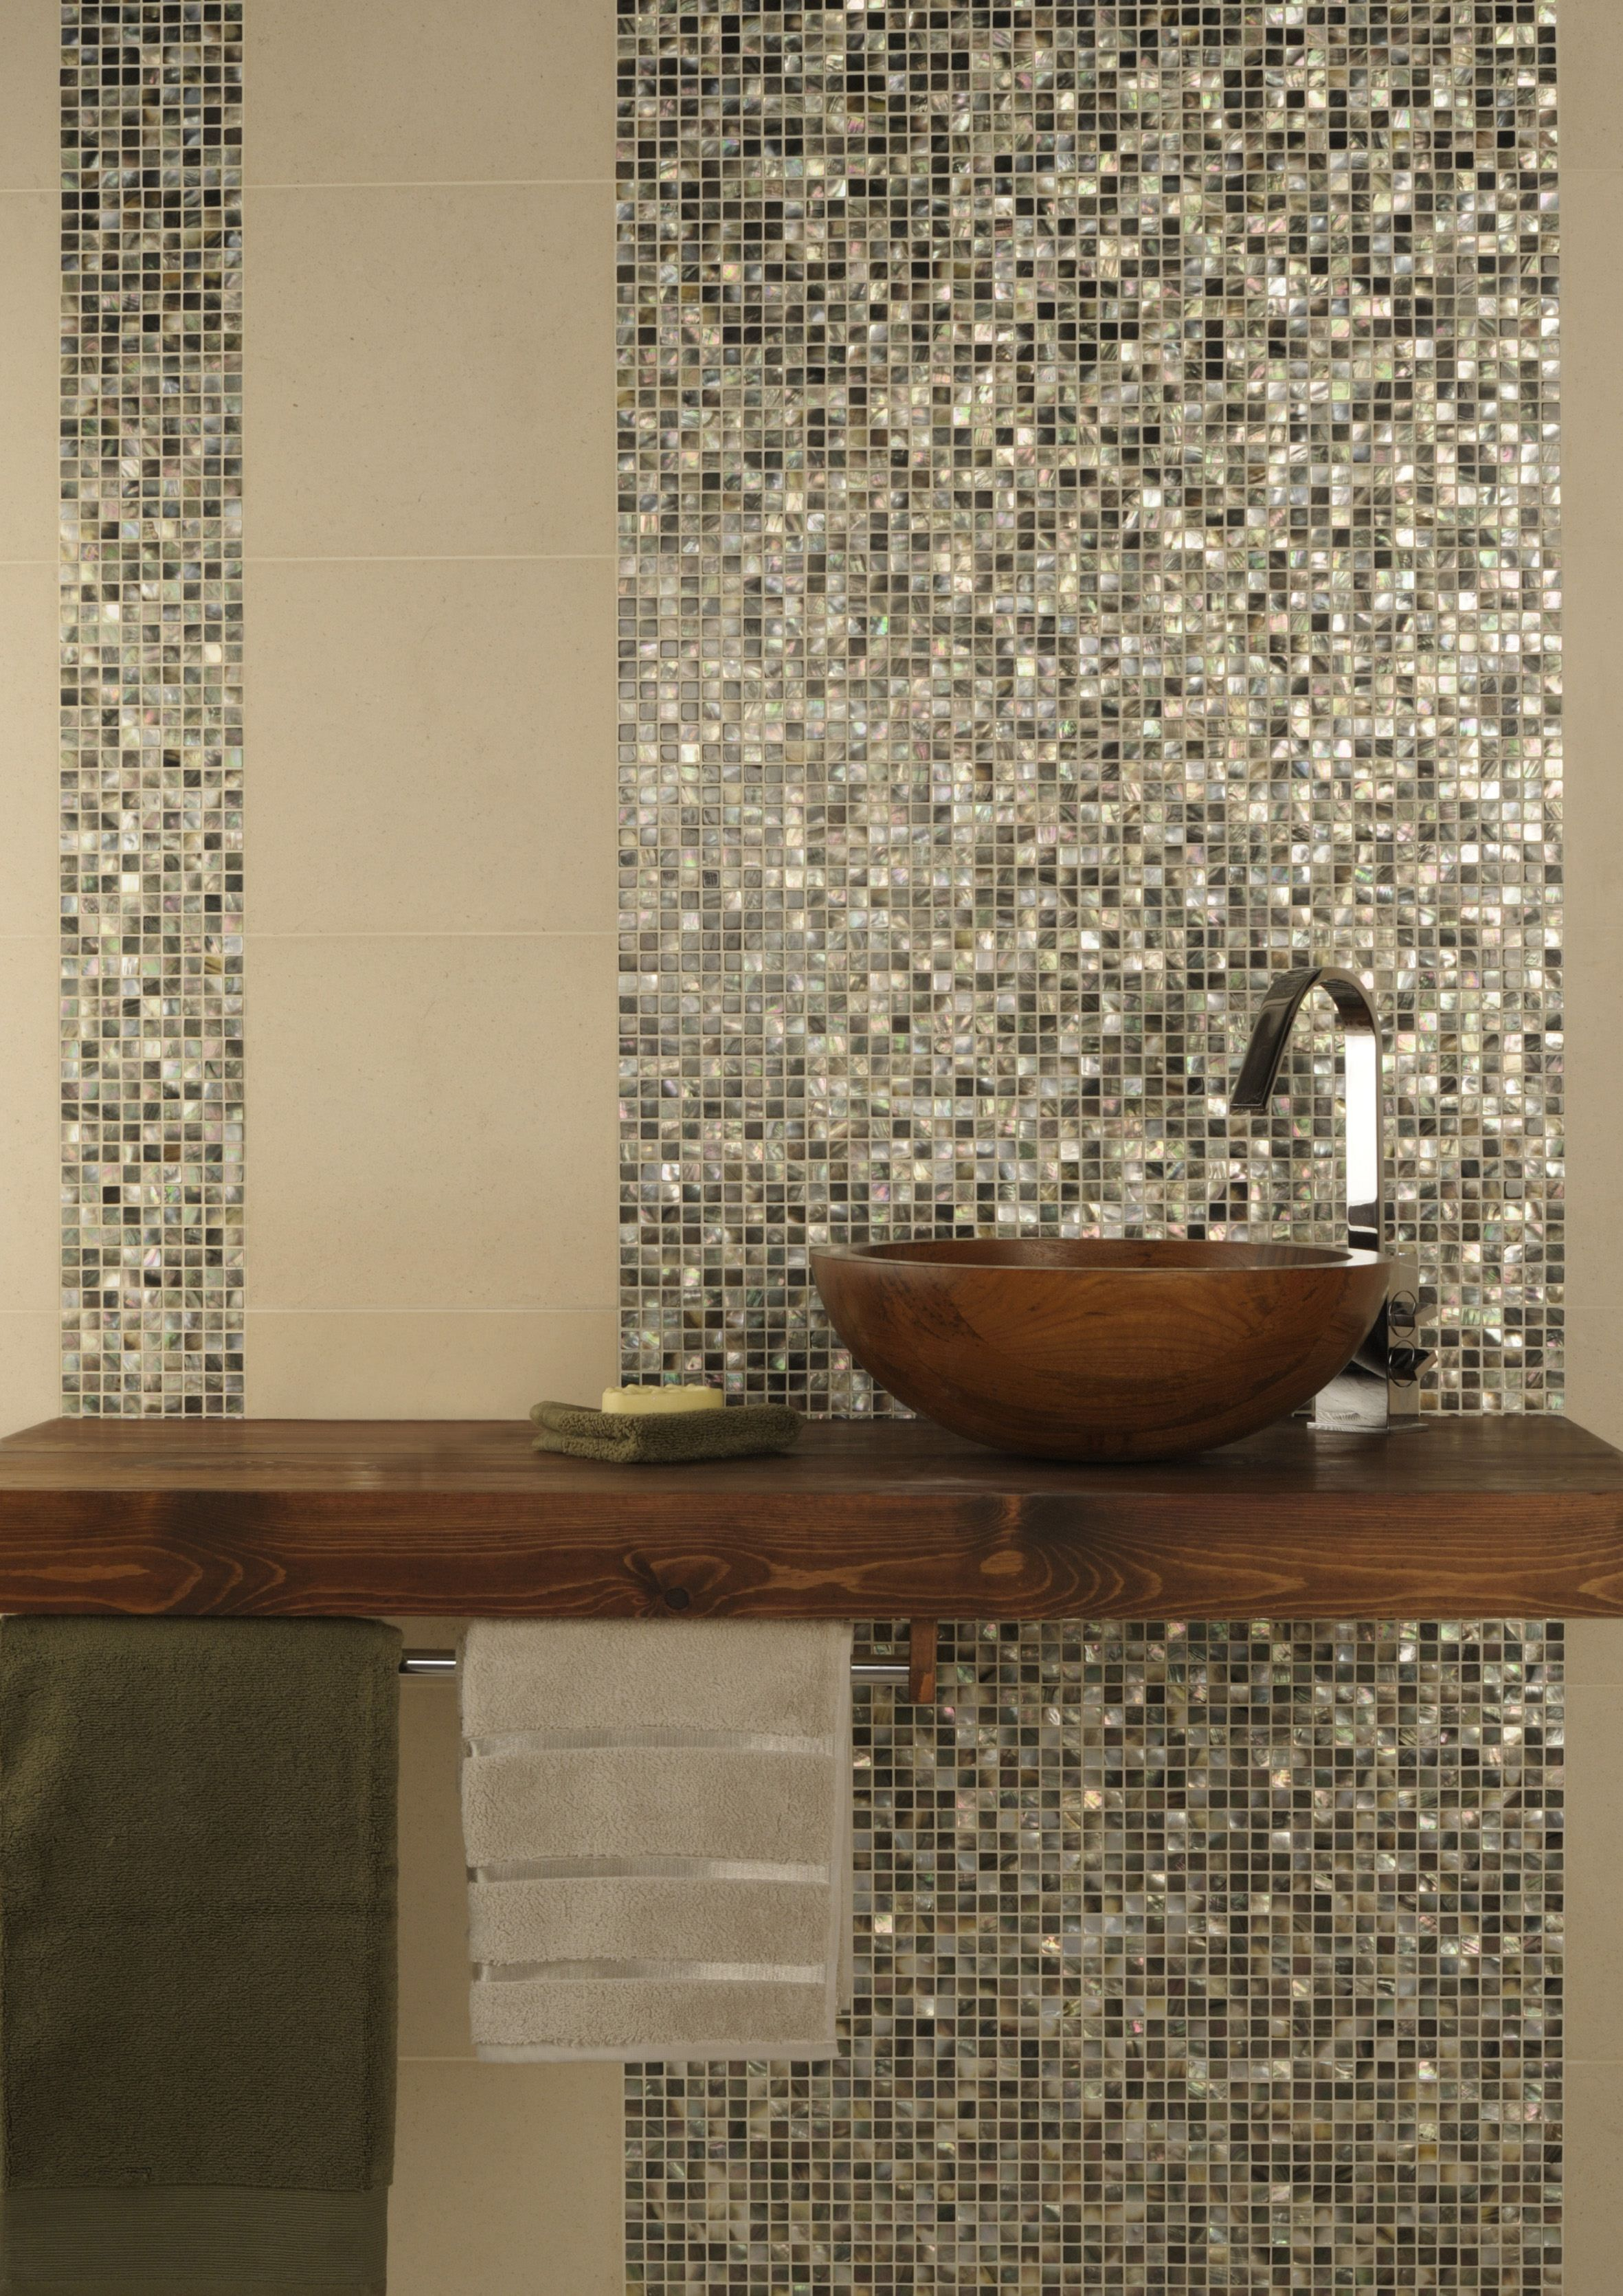 mosaic tiles for bathroom. Set an enchanting decor in your bathroom by covering walls black  mother of pearl mosaic tiles It will set a glittering and lively Mother Pearl shell Original Style Natural